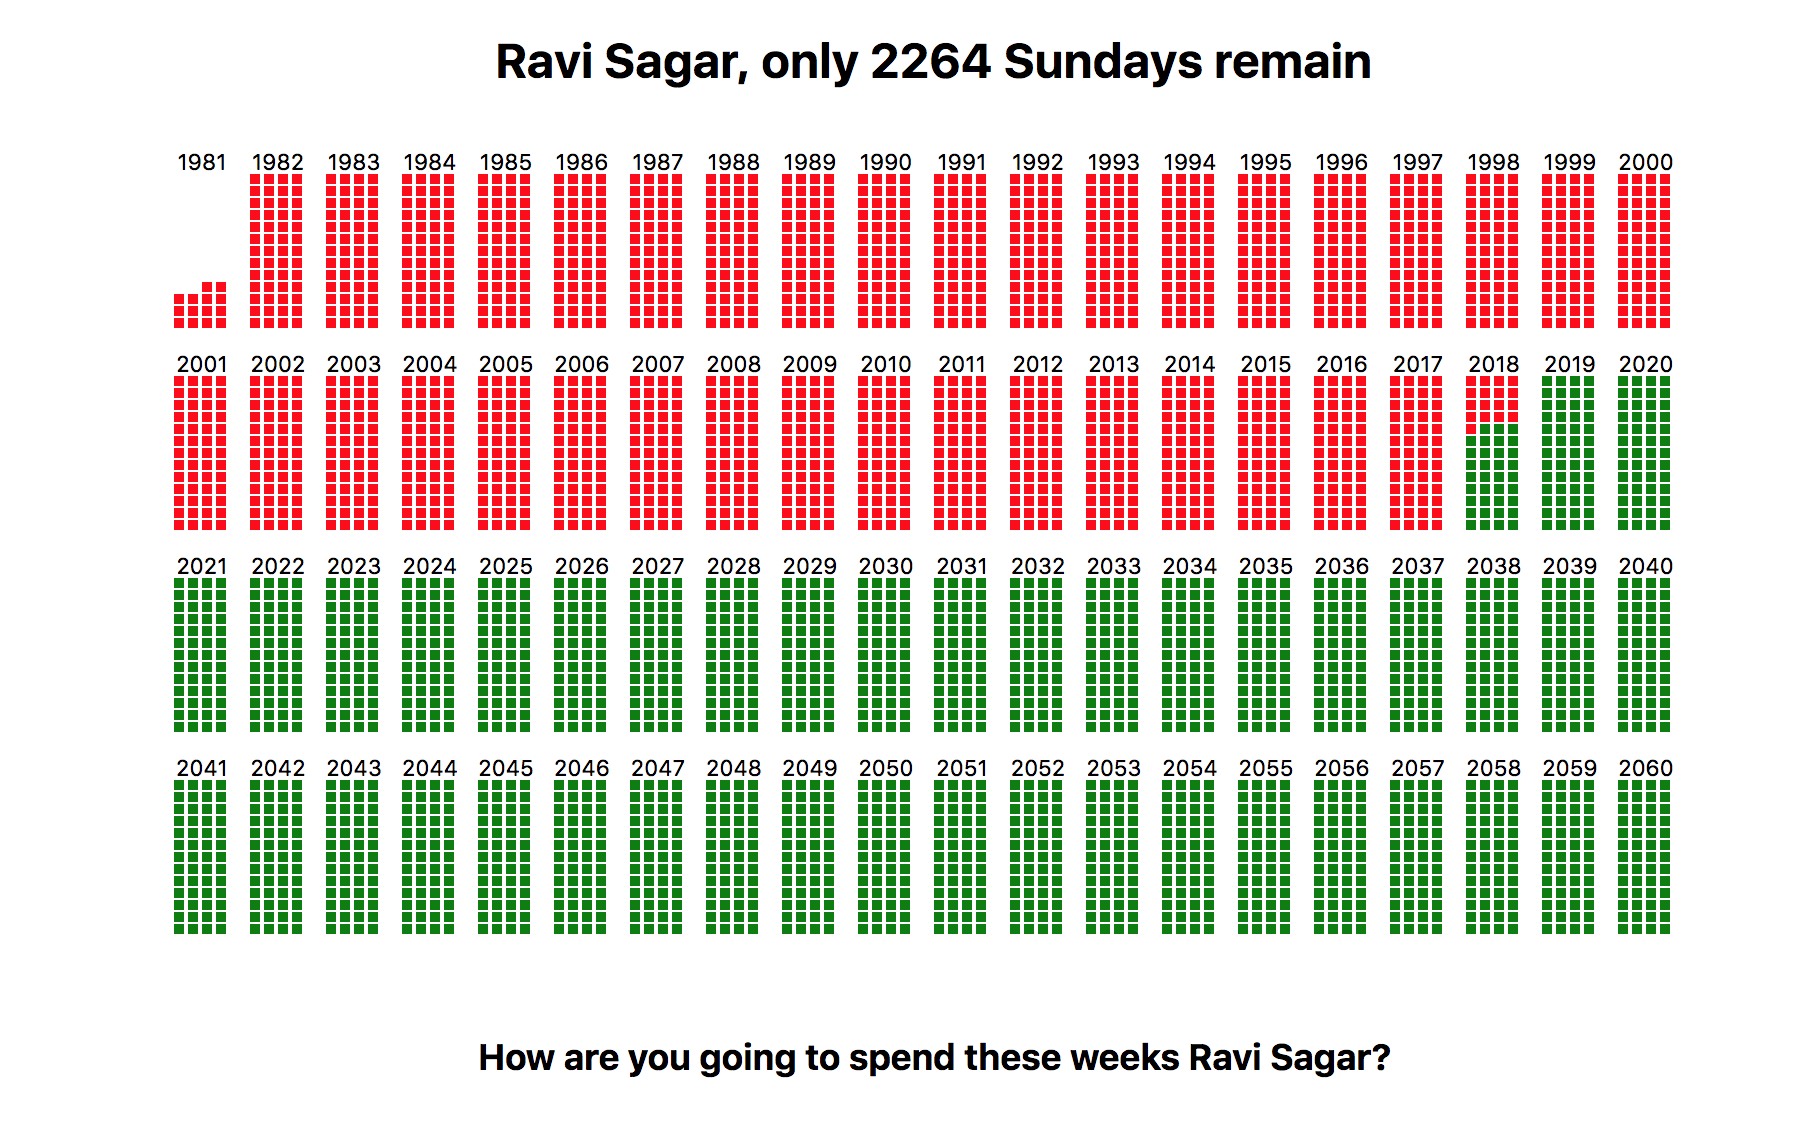 The Last Sunday - Ravi Sagar